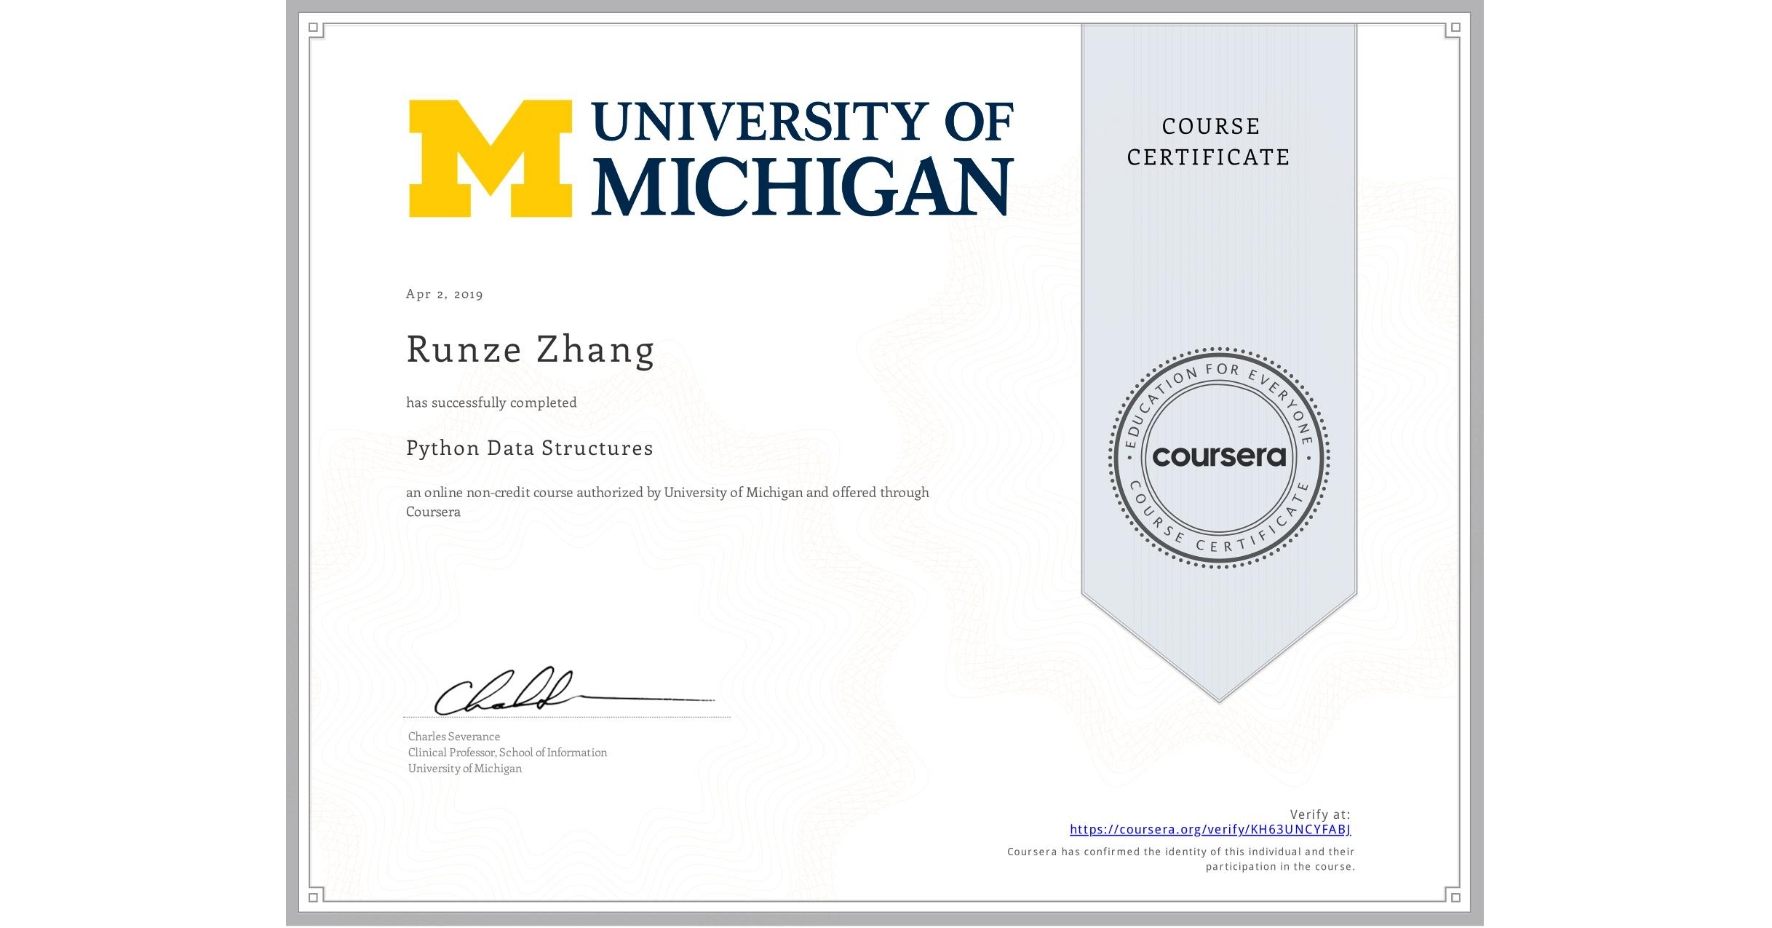 View certificate for Runze Zhang, Python Data Structures, an online non-credit course authorized by University of Michigan and offered through Coursera